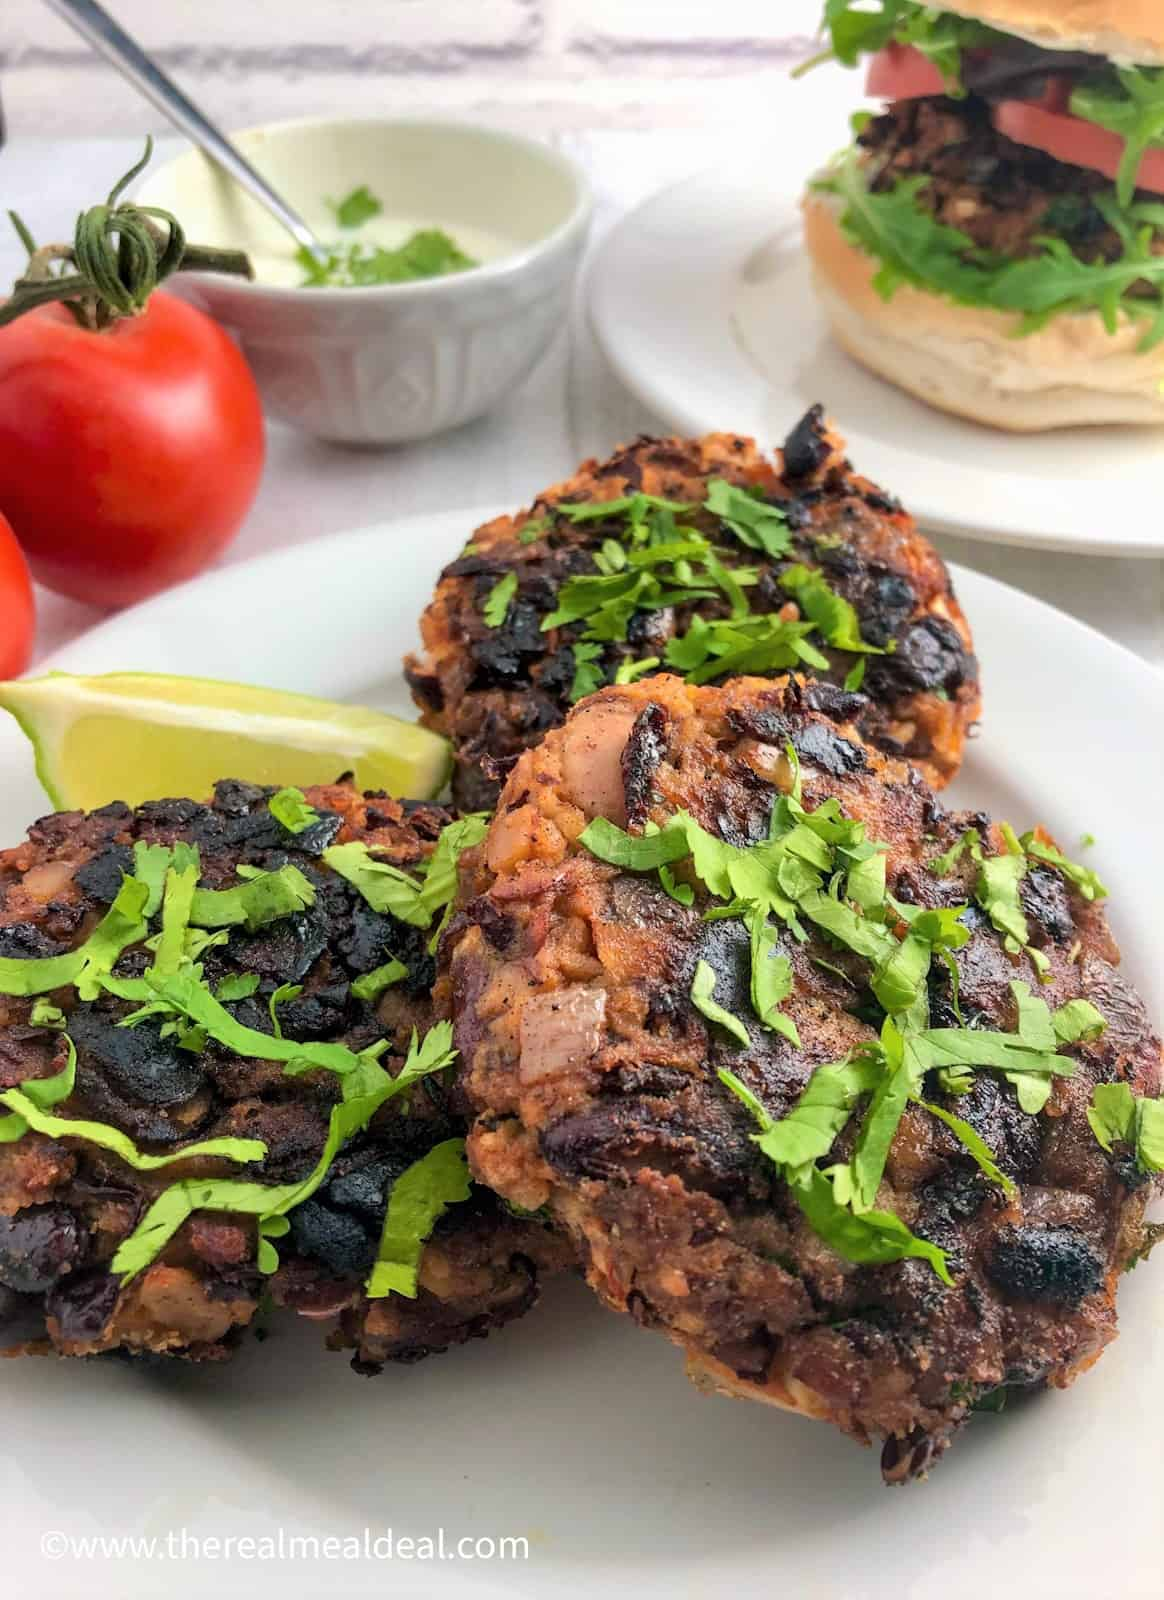 3 spicy bean burgers on plate topped with fresh coriander leaves bean burger in bun in background with tomatoes and yoghurt dip